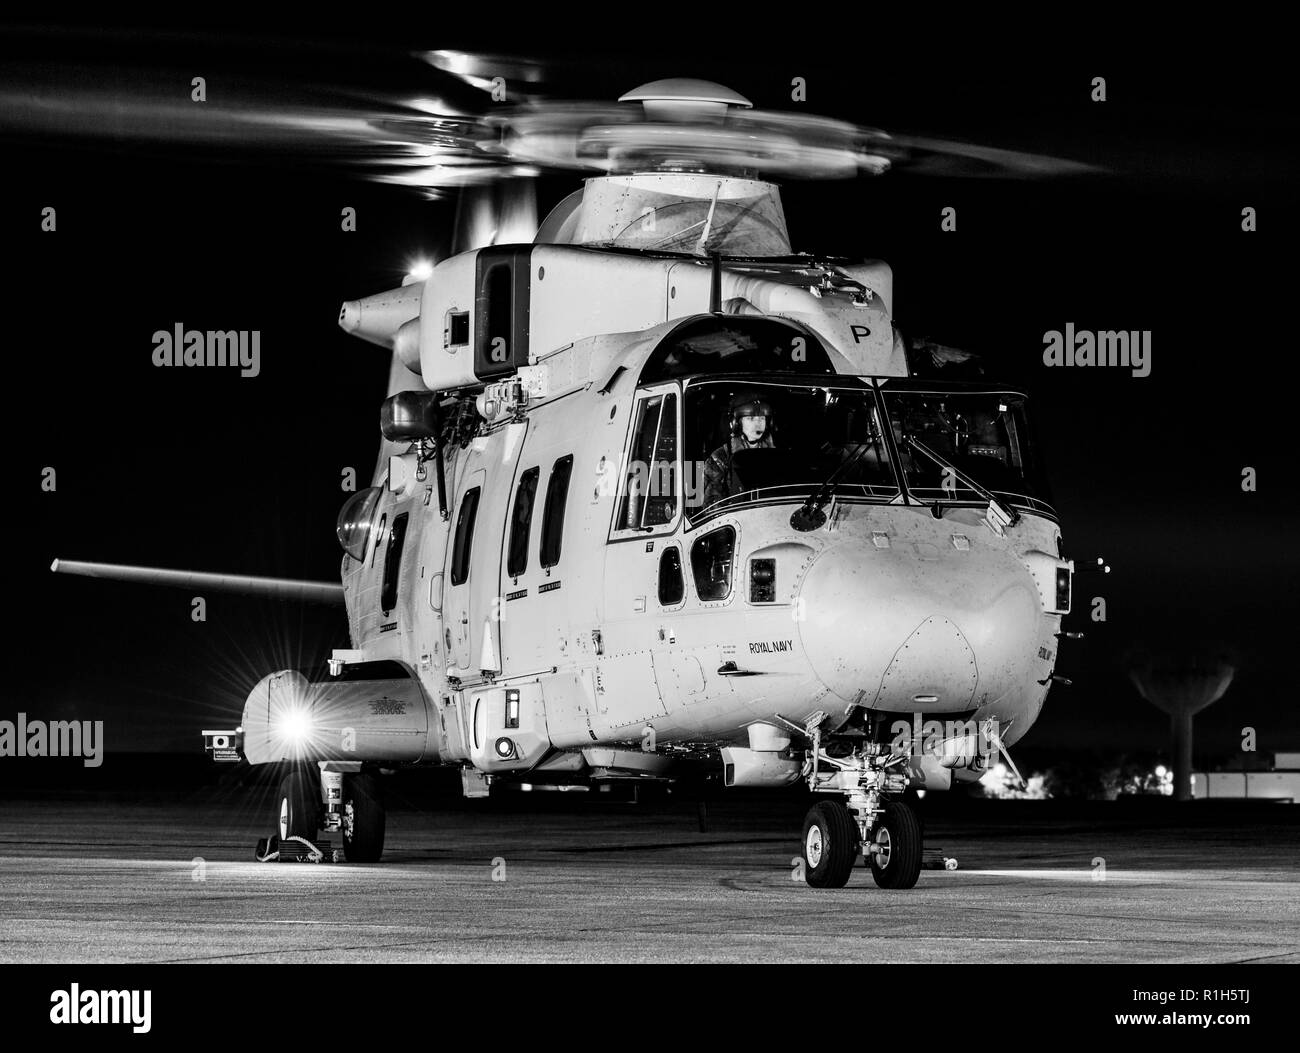 Royal Navy Merlin MK4 Commando Helicopter - Stock Image